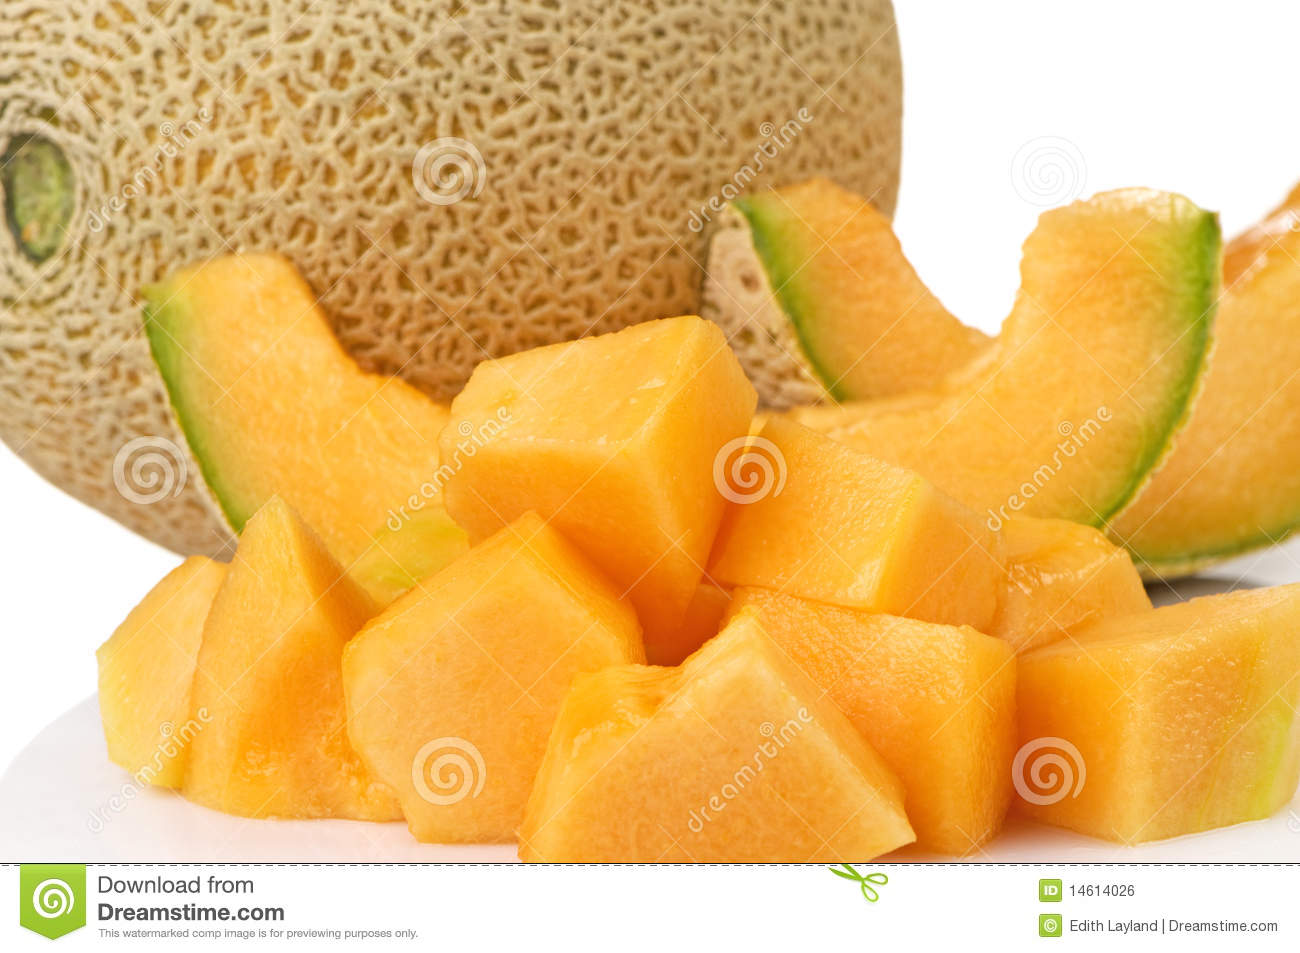 how to tell when cantaloupe is ready